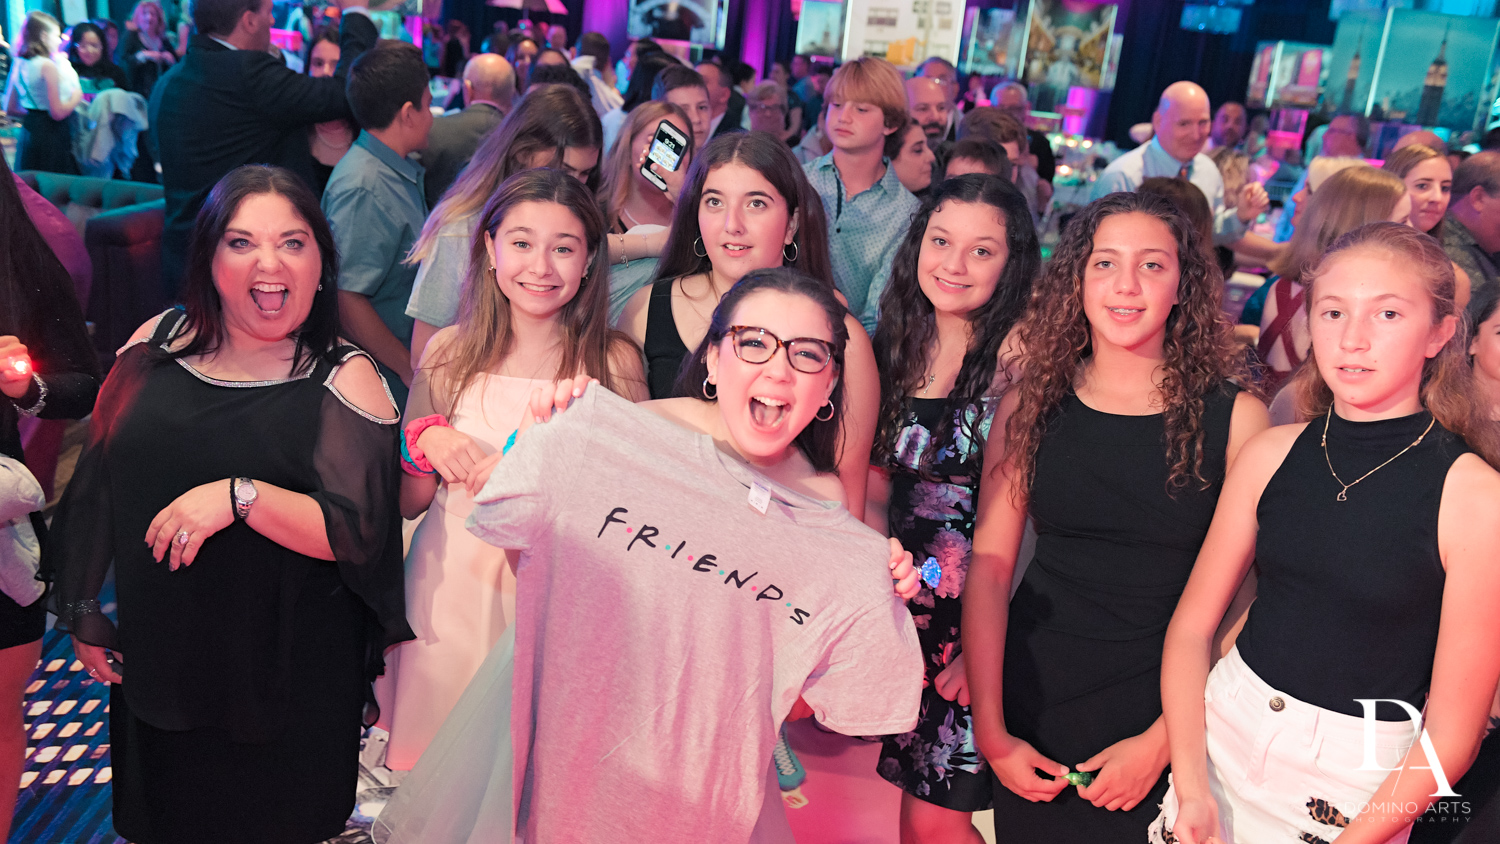 Friends Tshirt at New York Theme Bat Mitzvah at Woodfield Country Club, Boca Raton by Domino Arts Photography